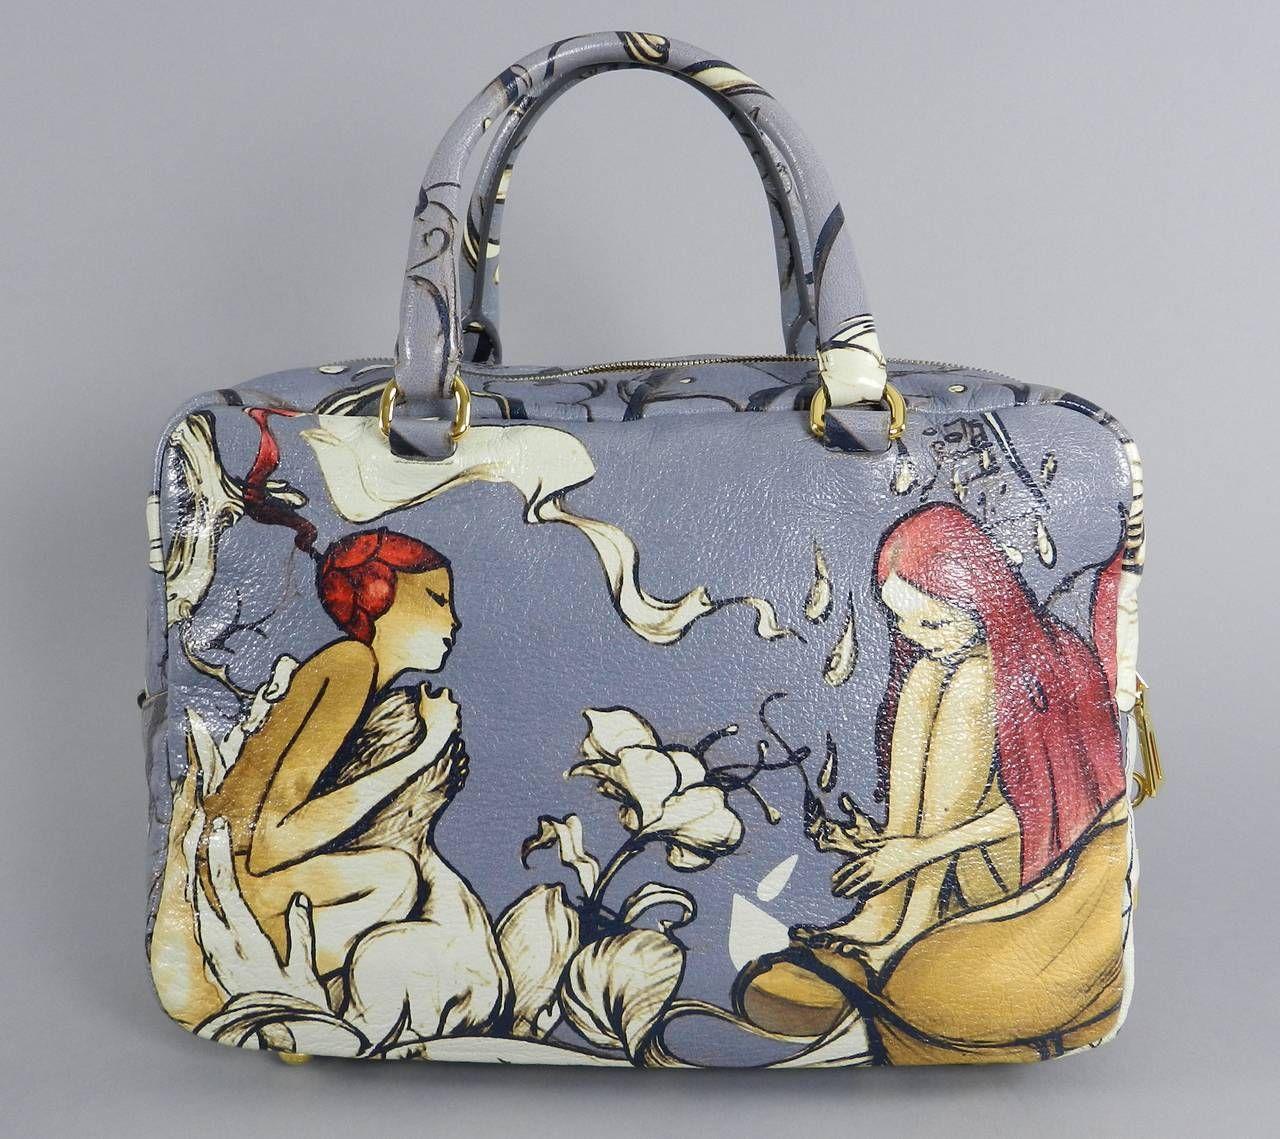 5ea6a78b68ba Prada Fairy Bag - Limitied Edition James Jean in 2019 | New Media ...